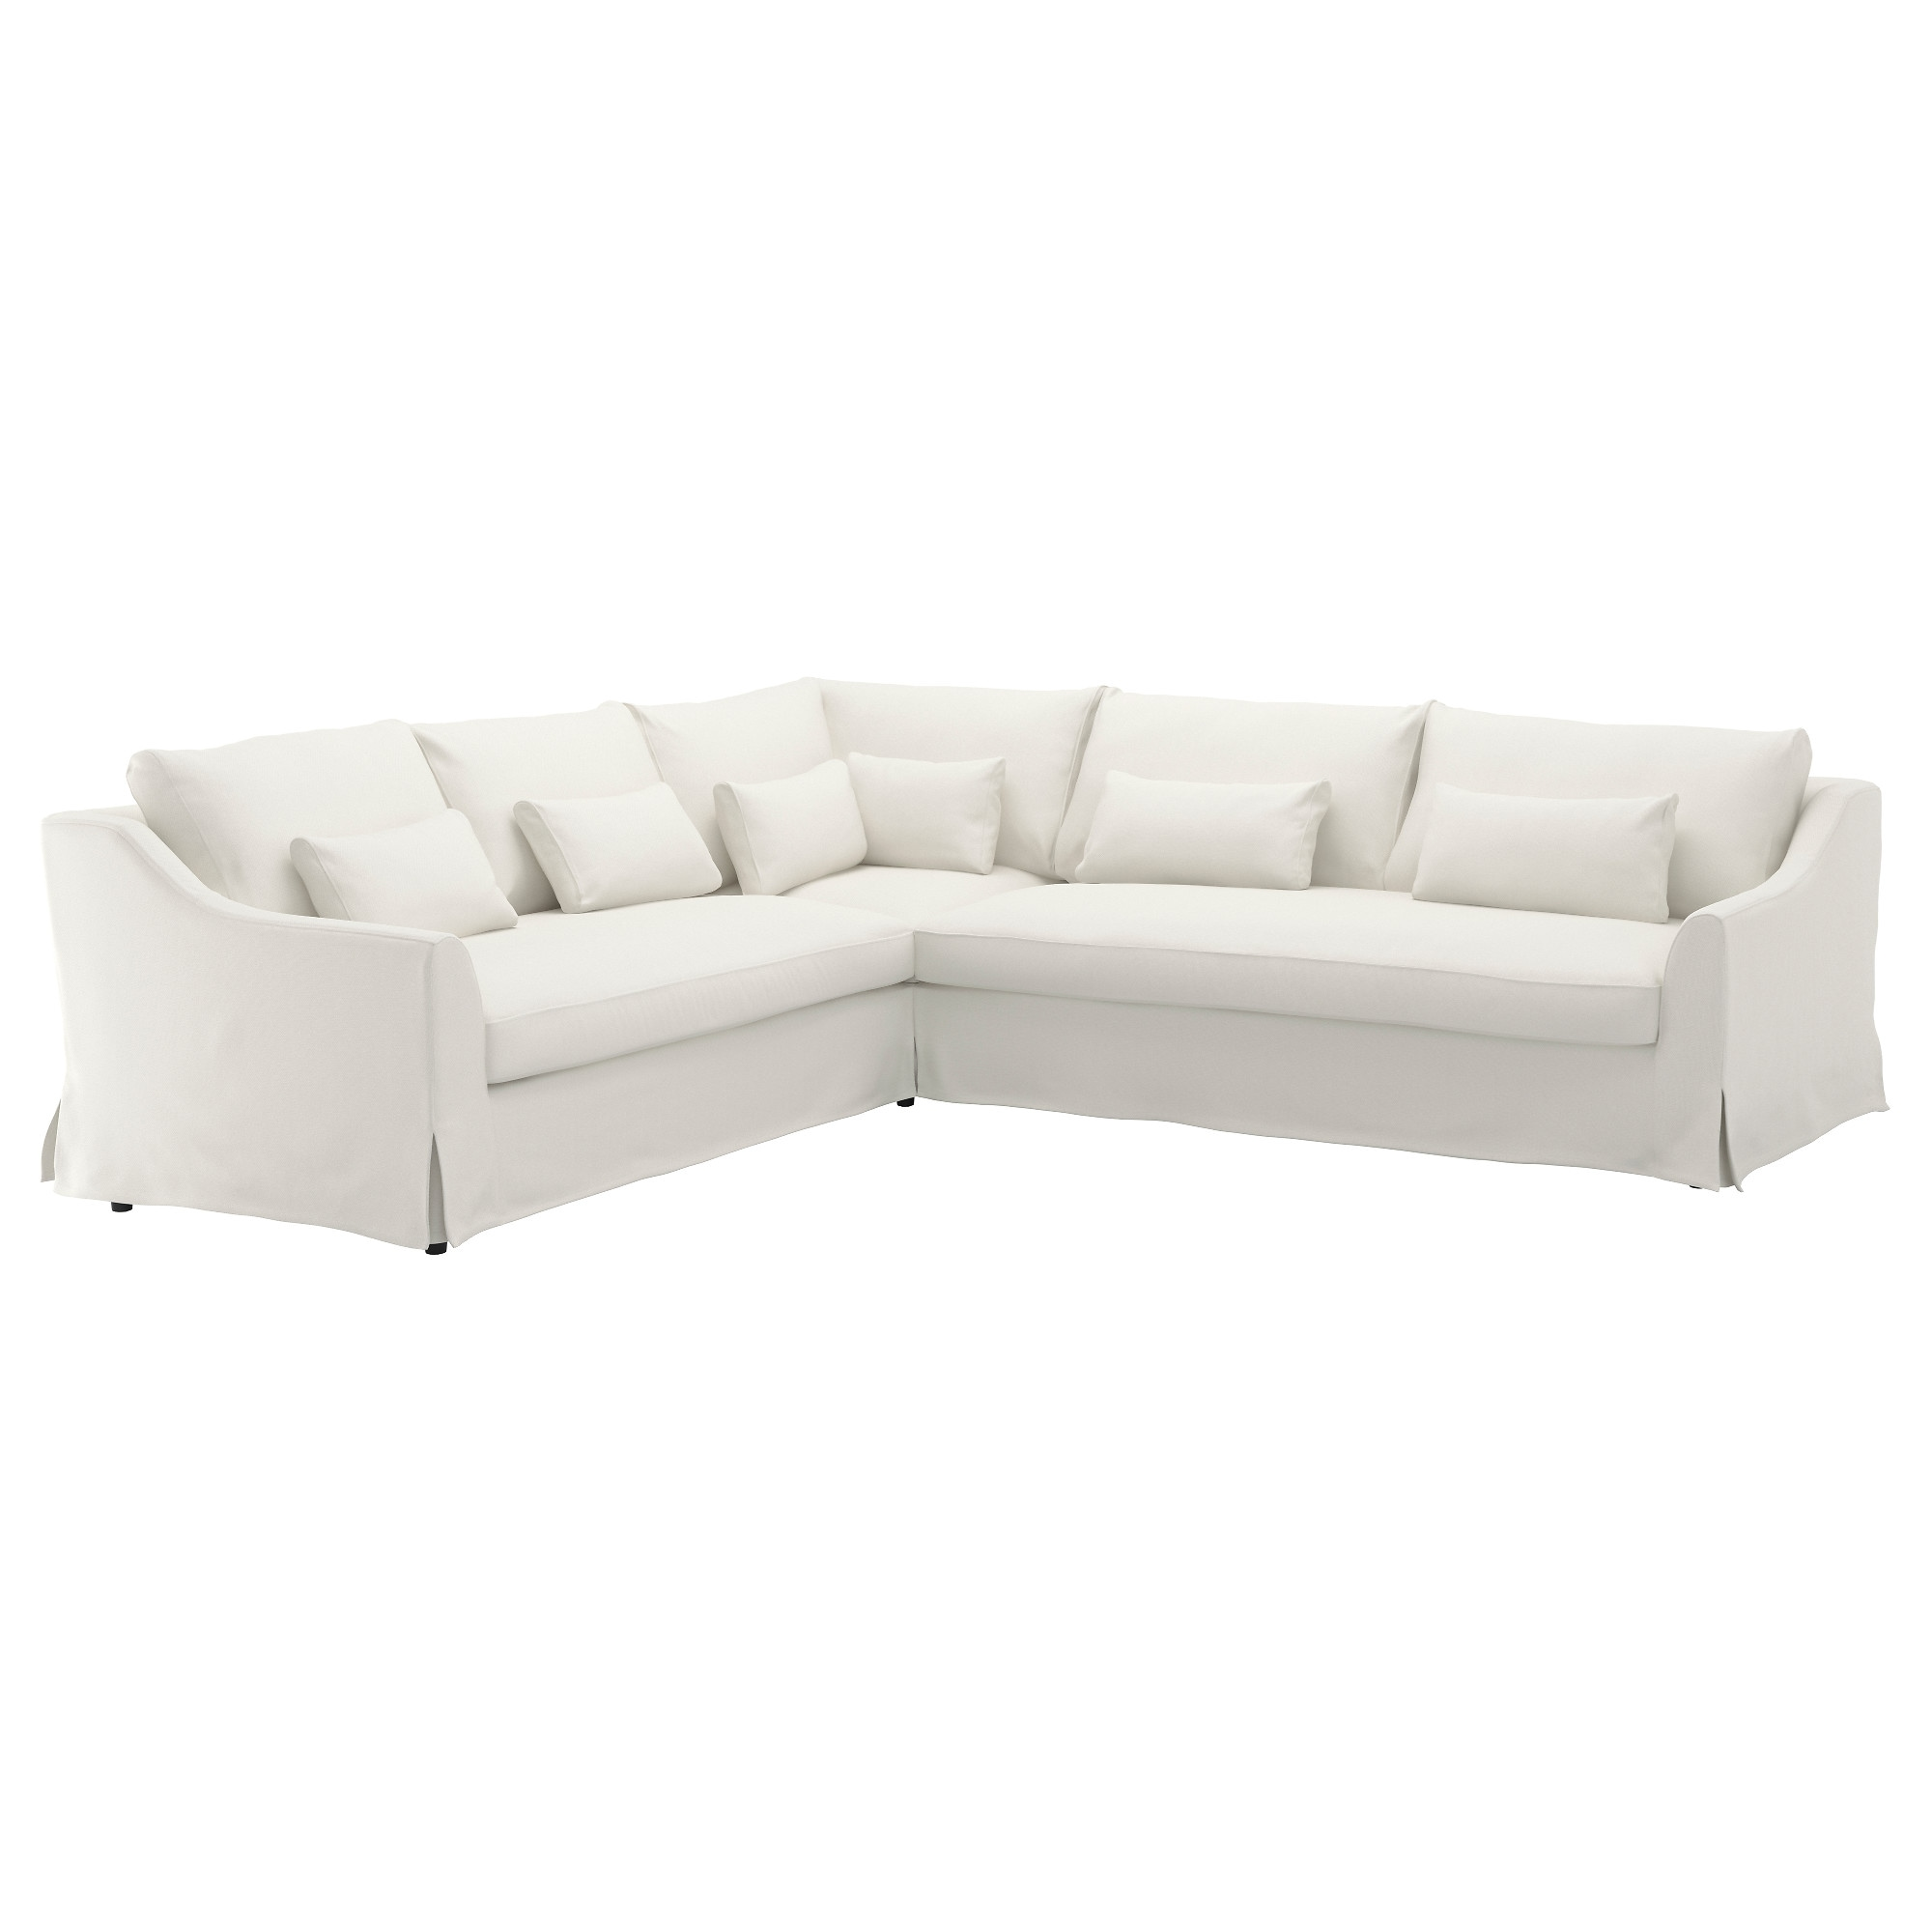 FÄRLÖV sectional5 seat/sofa right Flodafors white Height including back cushions  sc 1 st  Ikea : ikea sectional sofa - Sectionals, Sofas & Couches